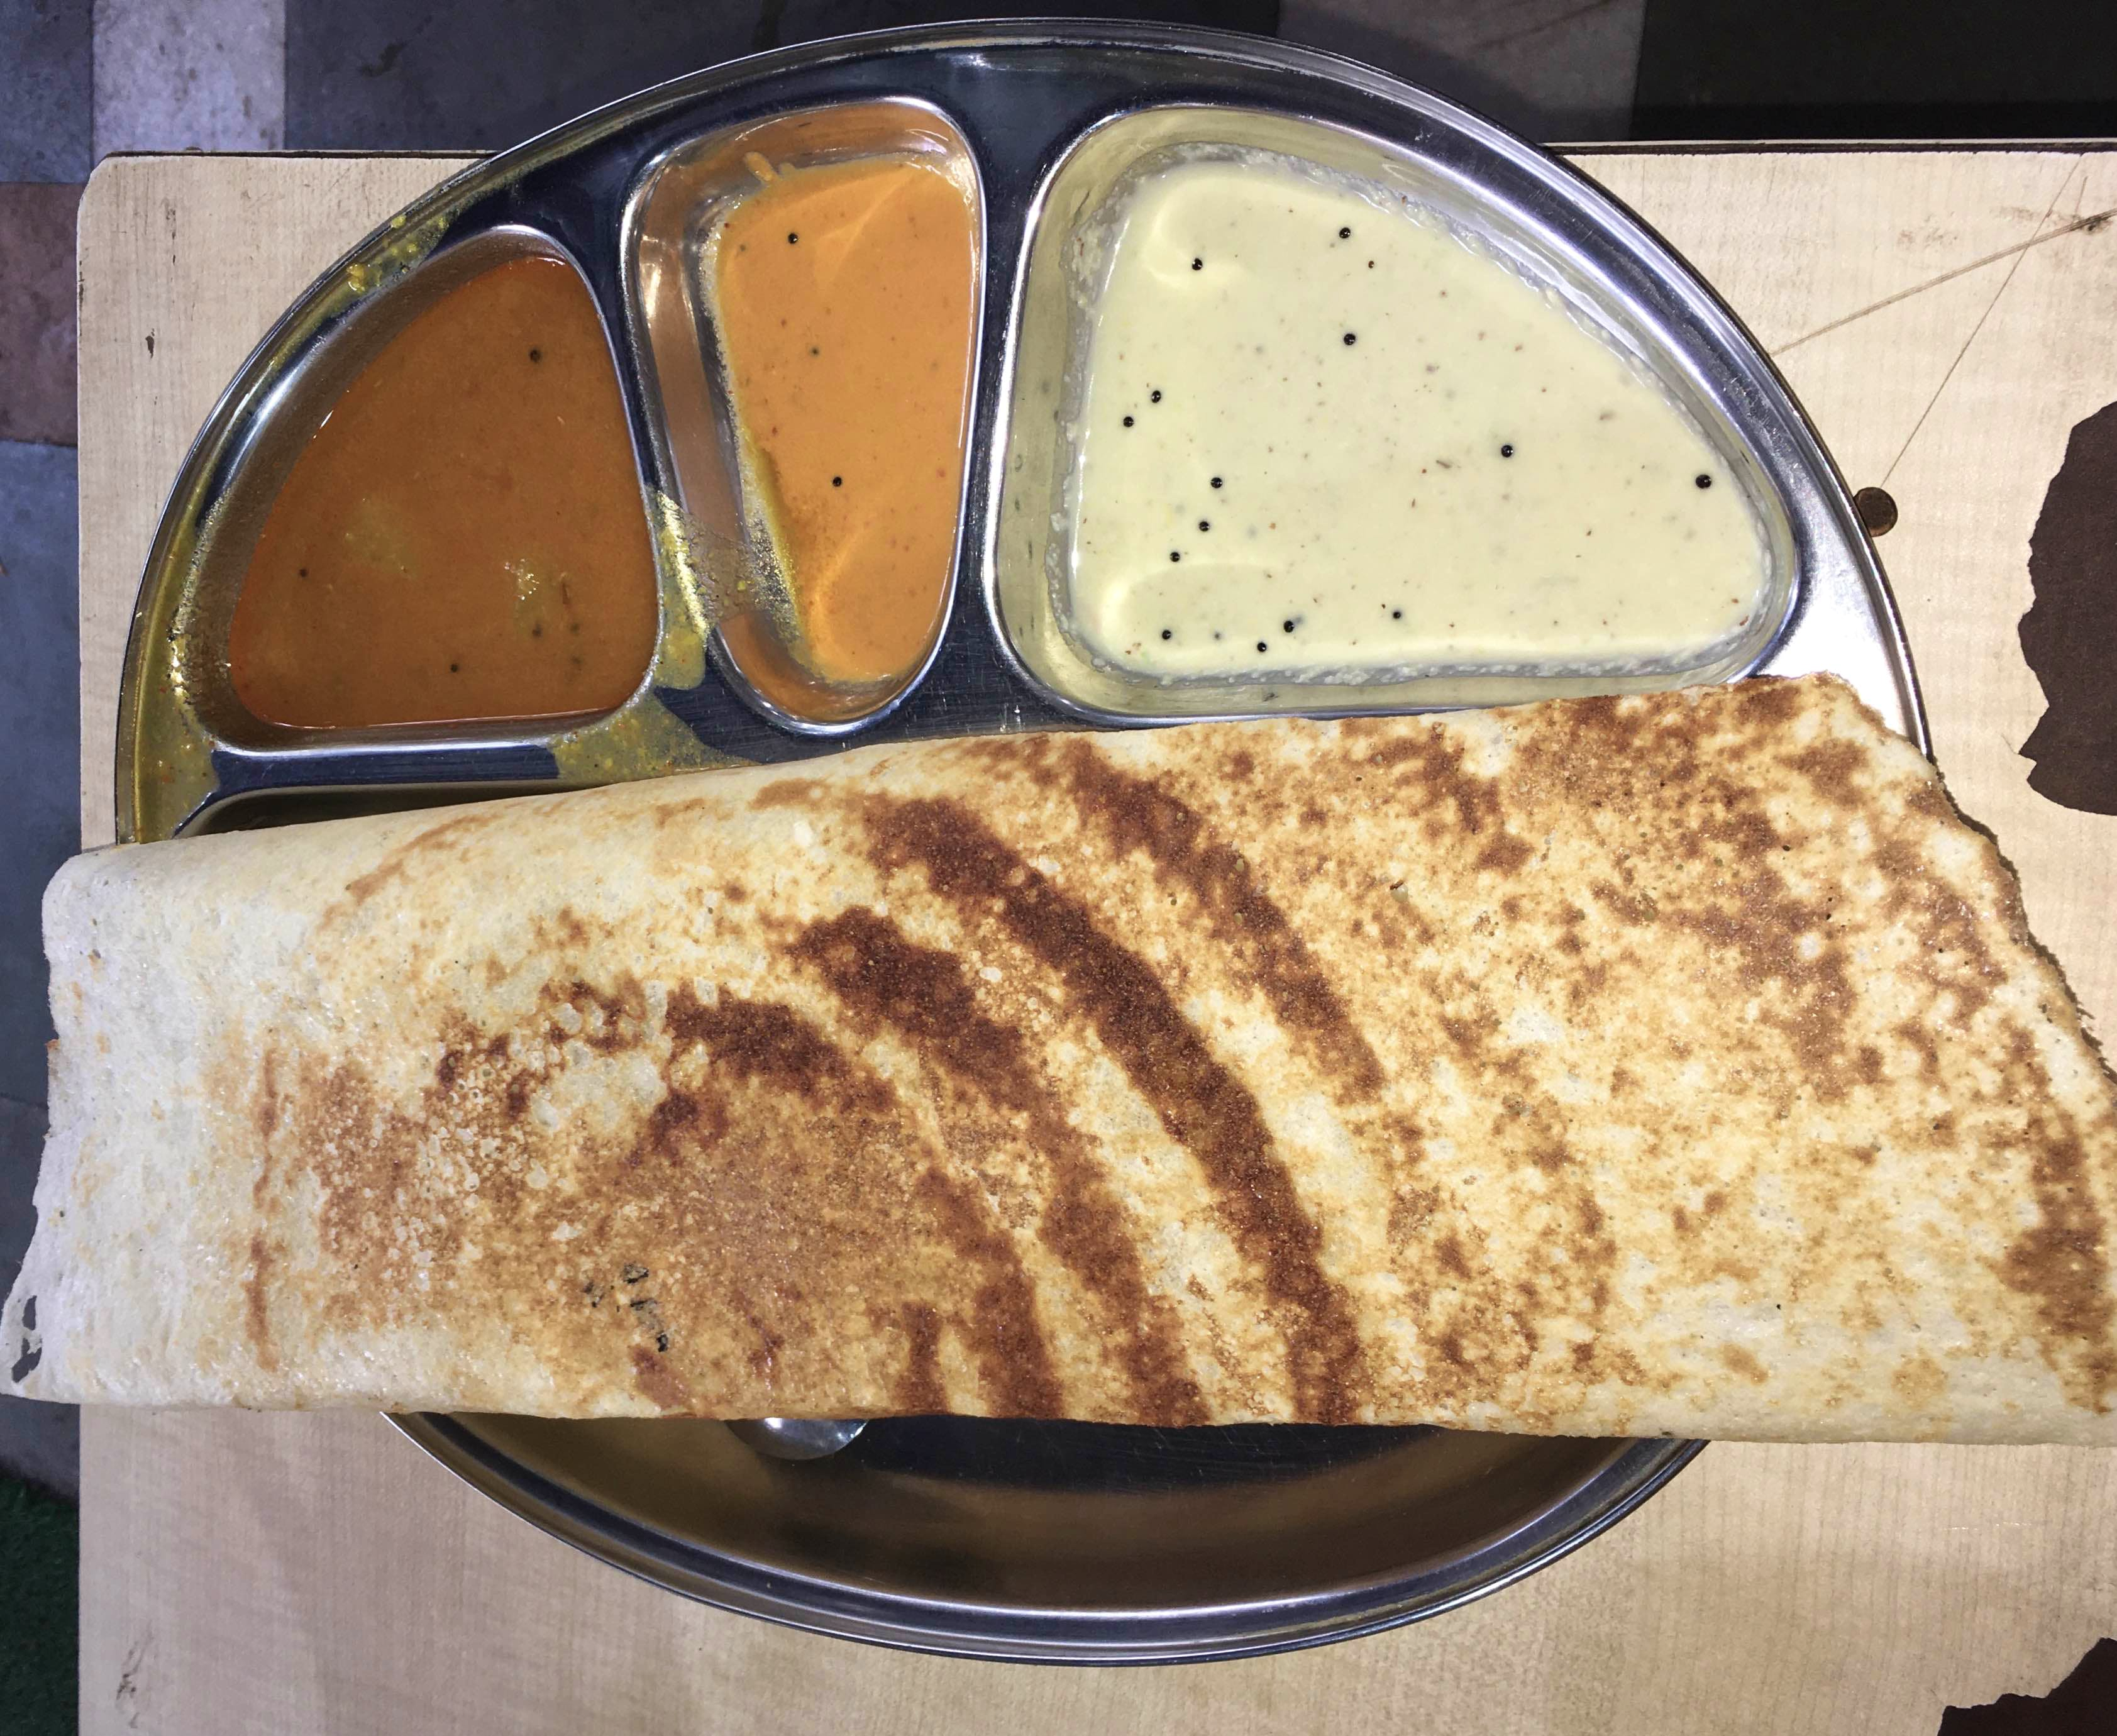 Dish,Food,Cuisine,Ingredient,Dosa,Indian cuisine,Bread,Comfort food,Baked goods